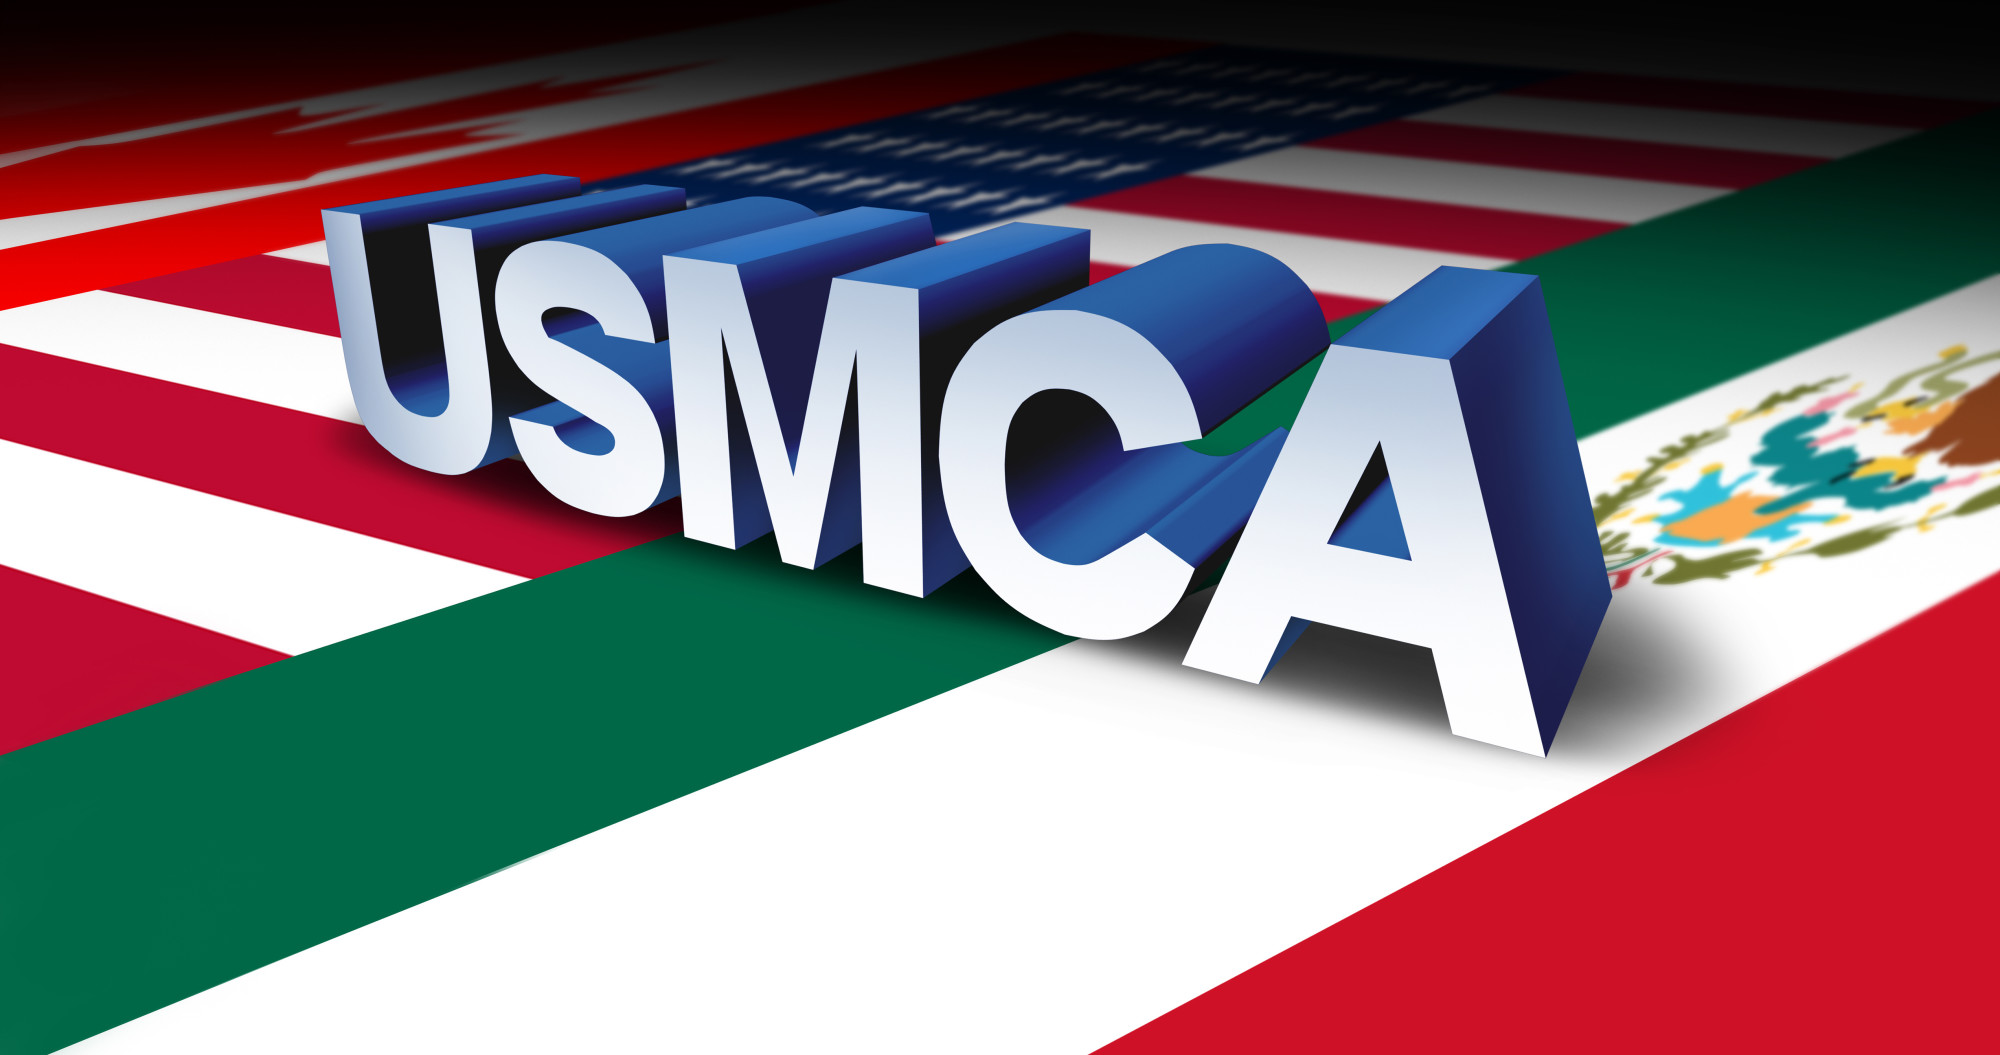 What Is USMCA and How Does It Affect Digital Trade?